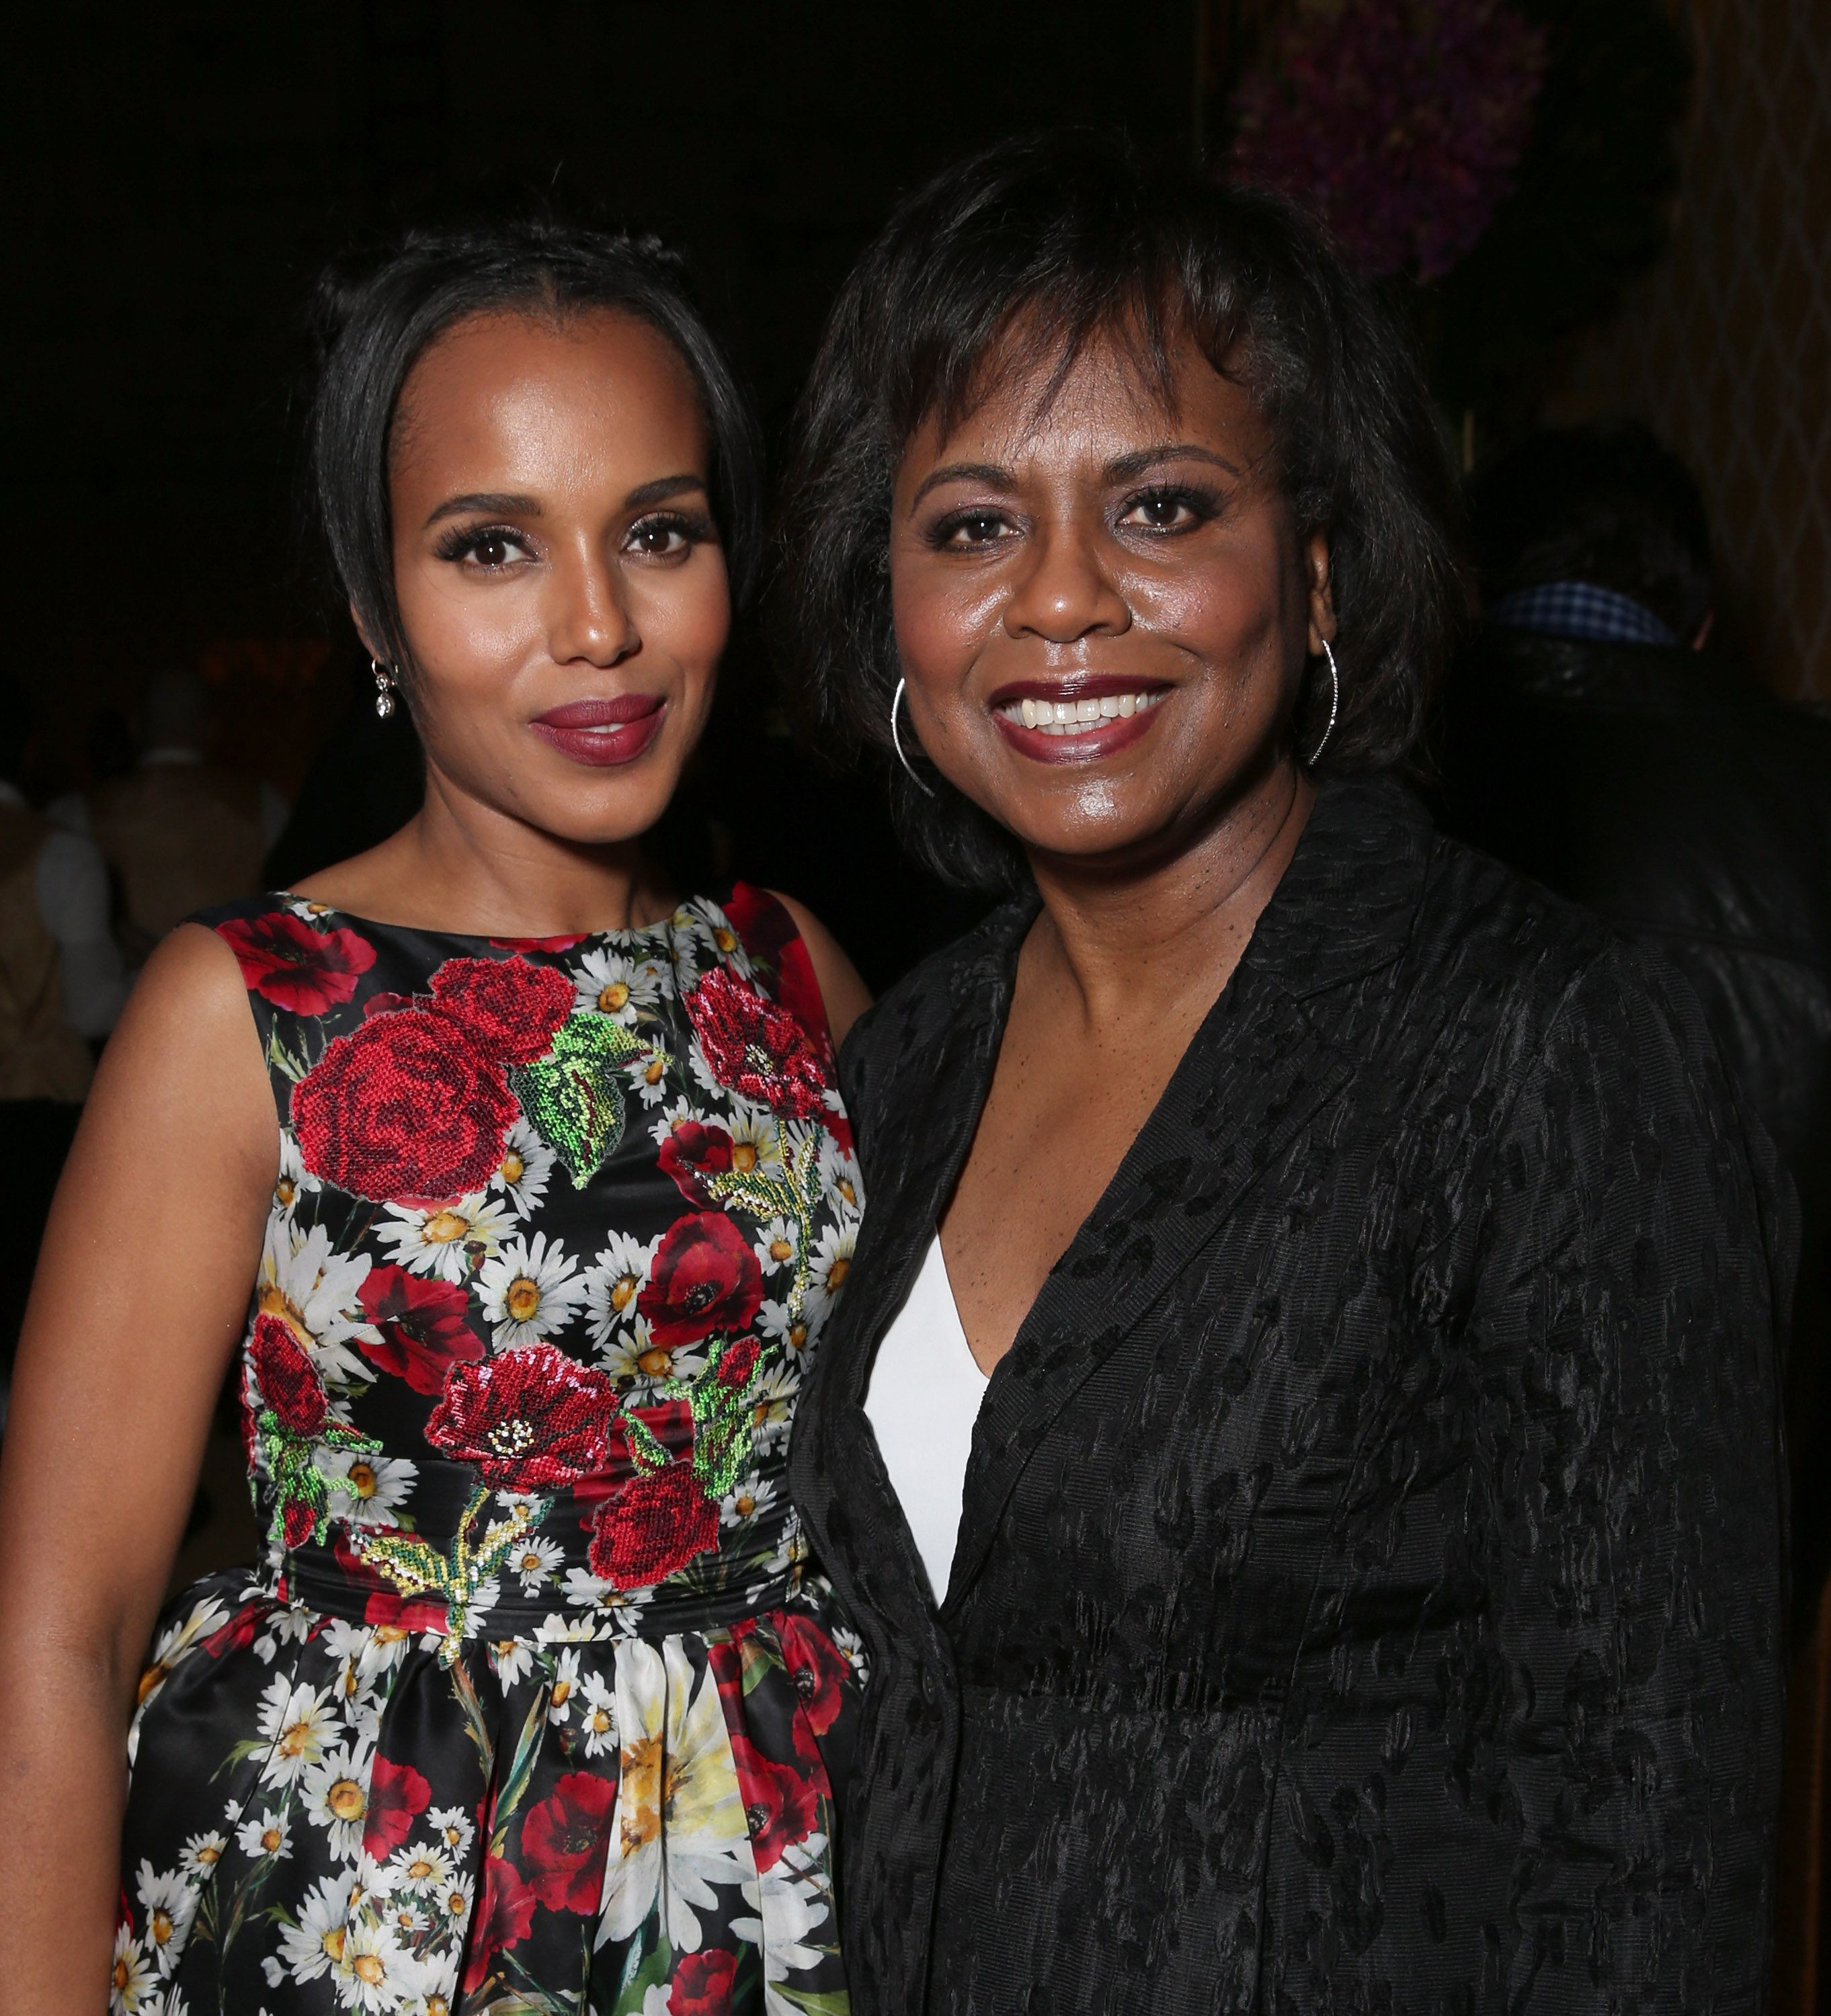 HOLLYWOOD, CALIFORNIA - MARCH 31:  Kerry Washington and Anita Hill attend the after party for the premiere of HBO Films' 'Confirmation' at Paramount Studios on March 31, 2016 in Hollywood, California.  (Photo by Todd Williamson/Getty Images)